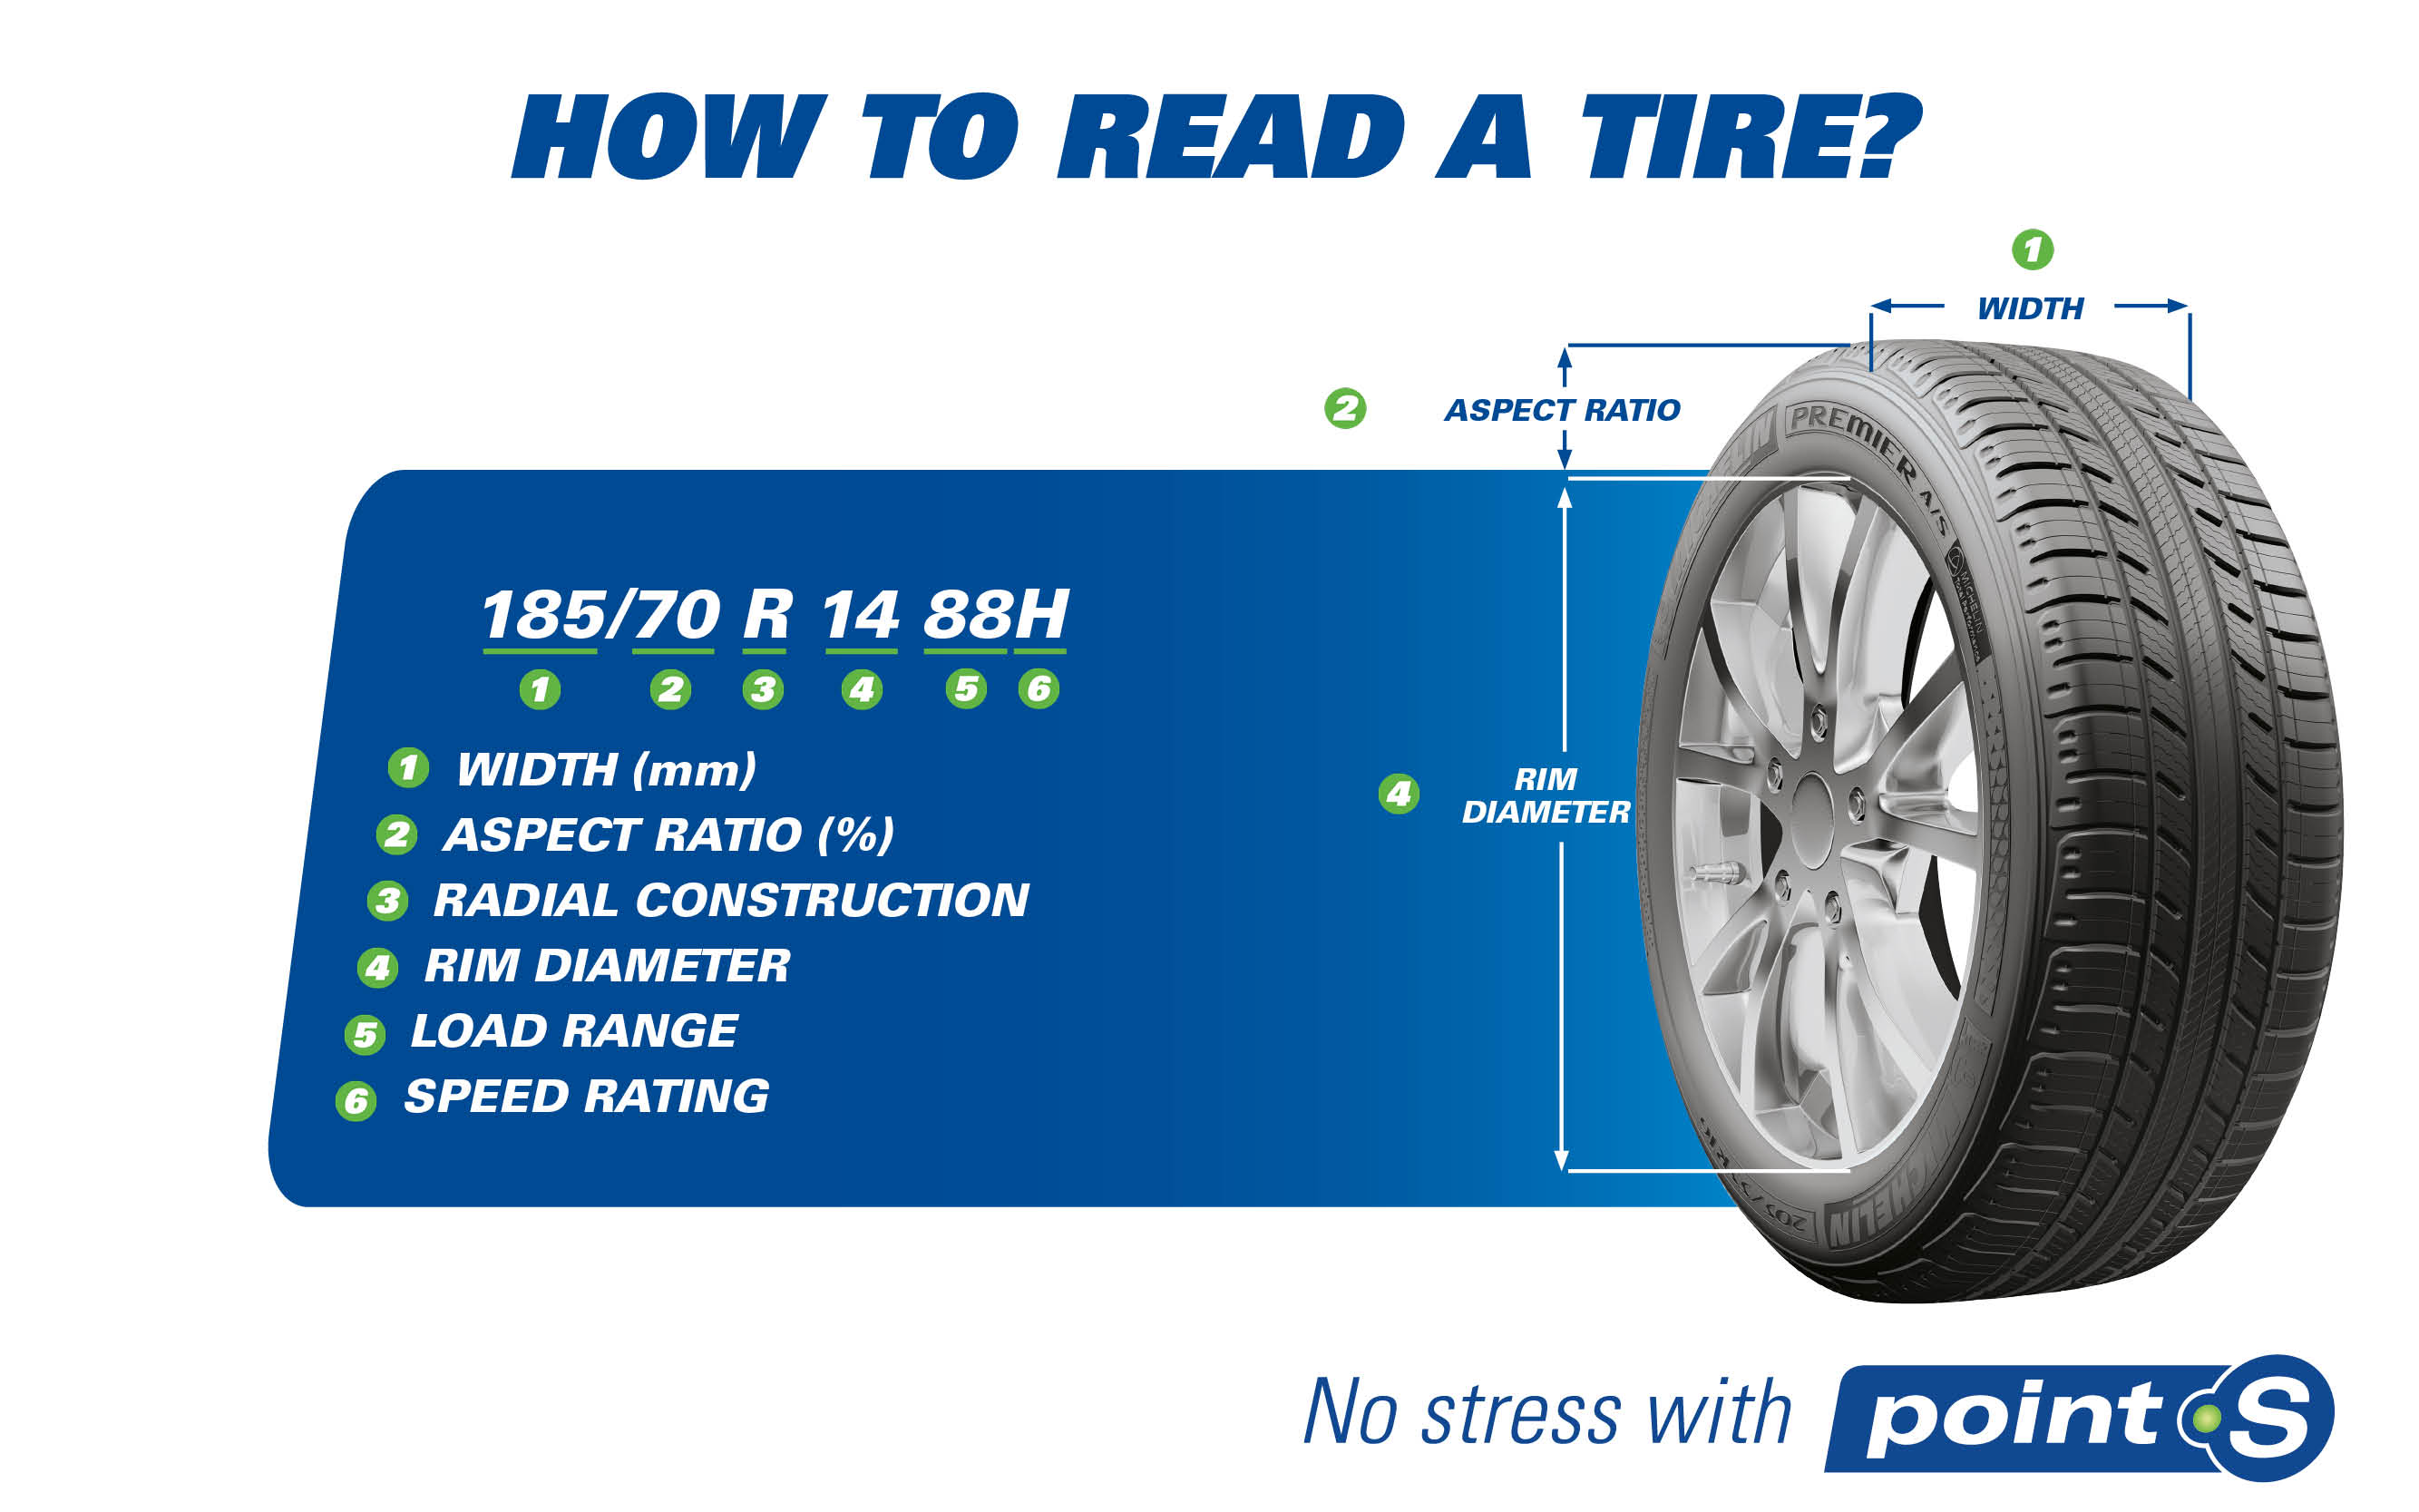 How to read a tire?